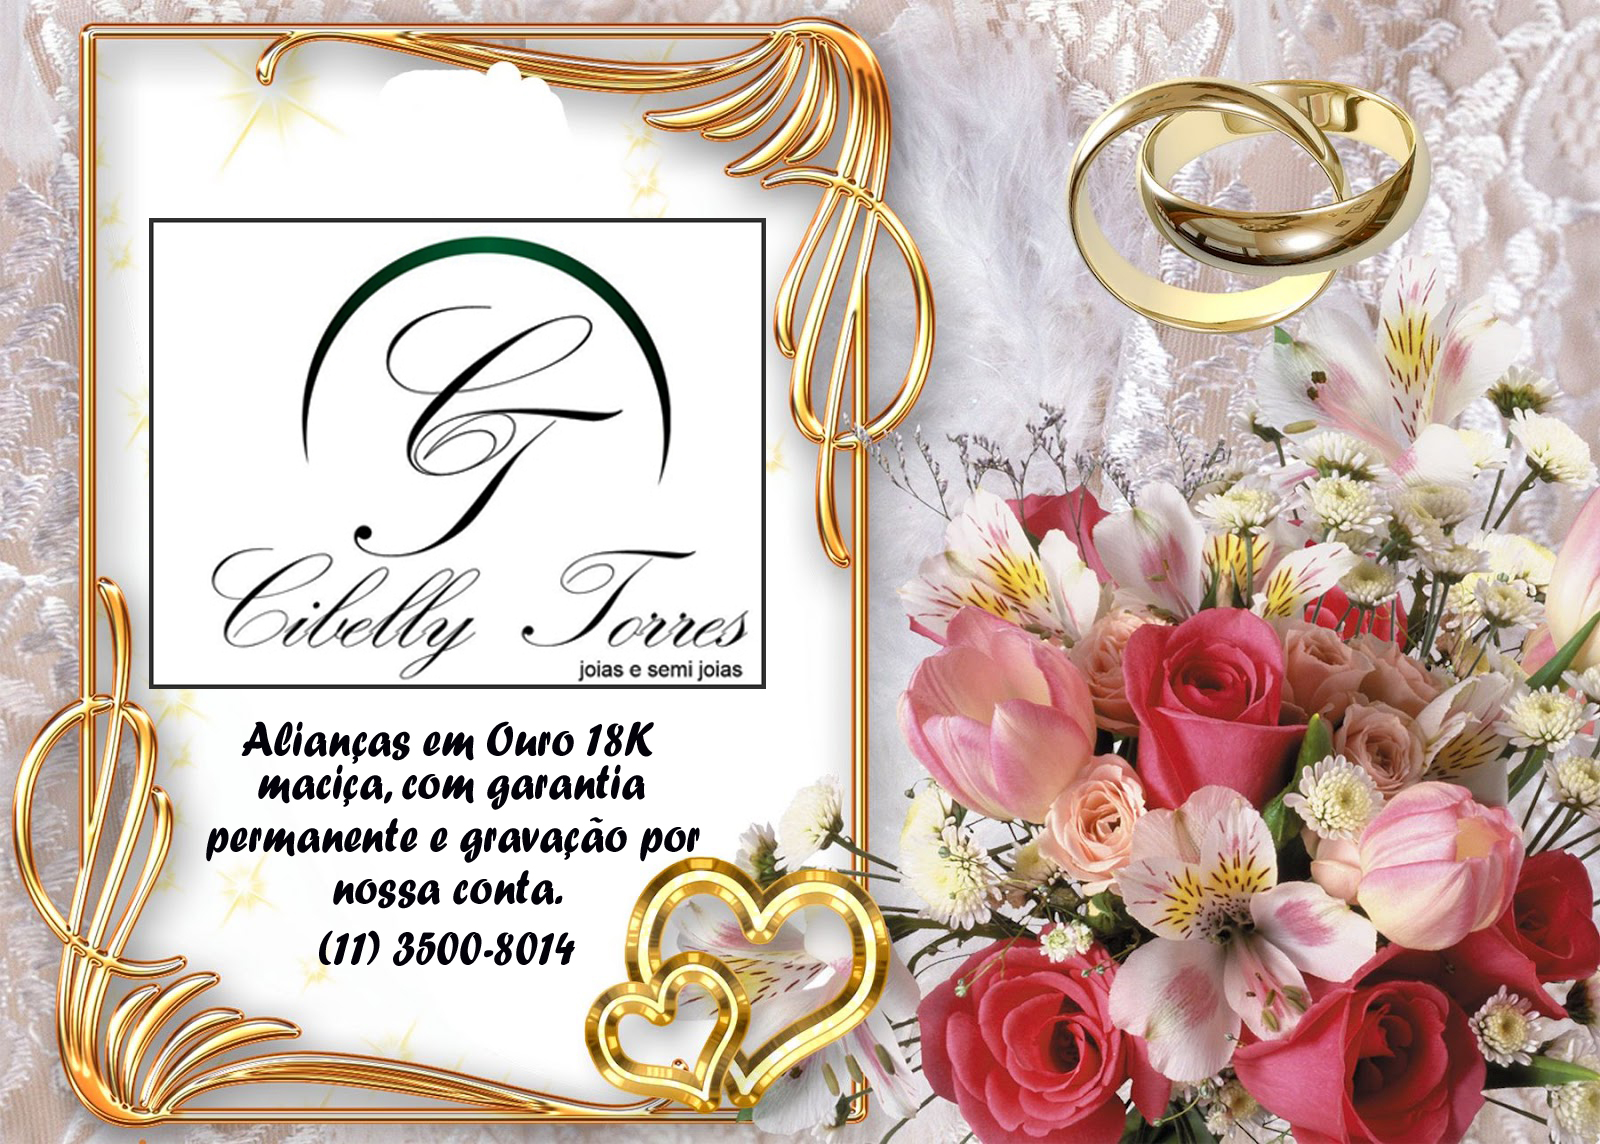 Cibelly Torres Jóias e Semi Jóias - Shopping Atrium. (11) 3500-8014